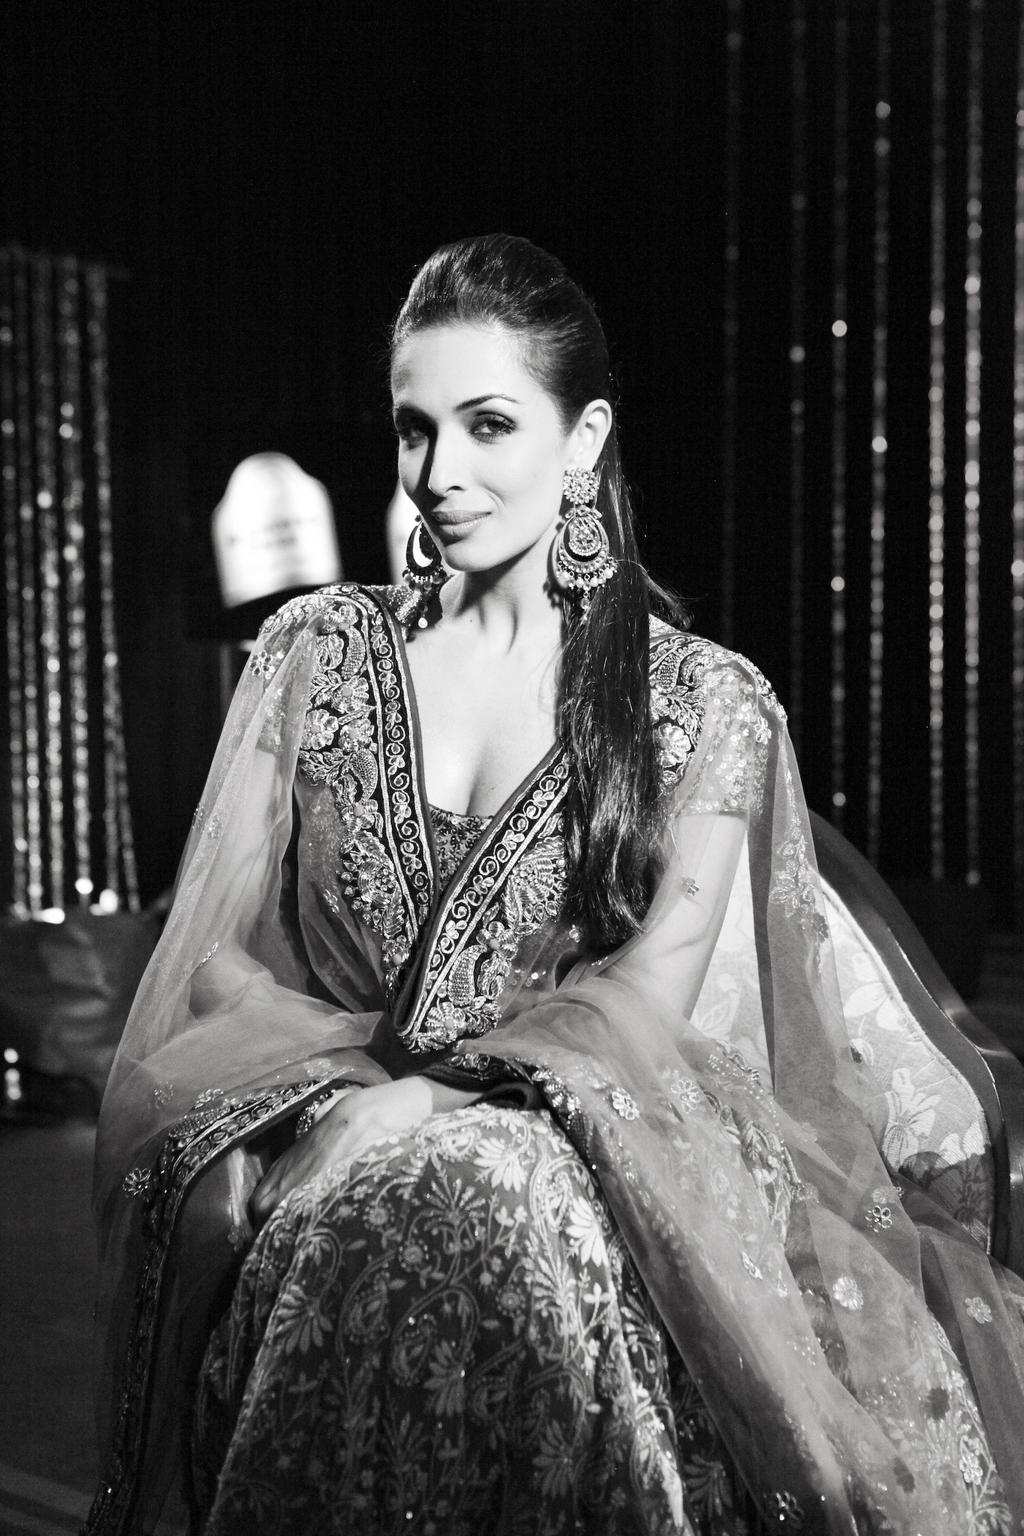 We-hope-you-didn-t-miss-the-very-y-Malaika-Arora-Khan-yesterday-She-looked-like-a-dream-wallpaper-wp52012679